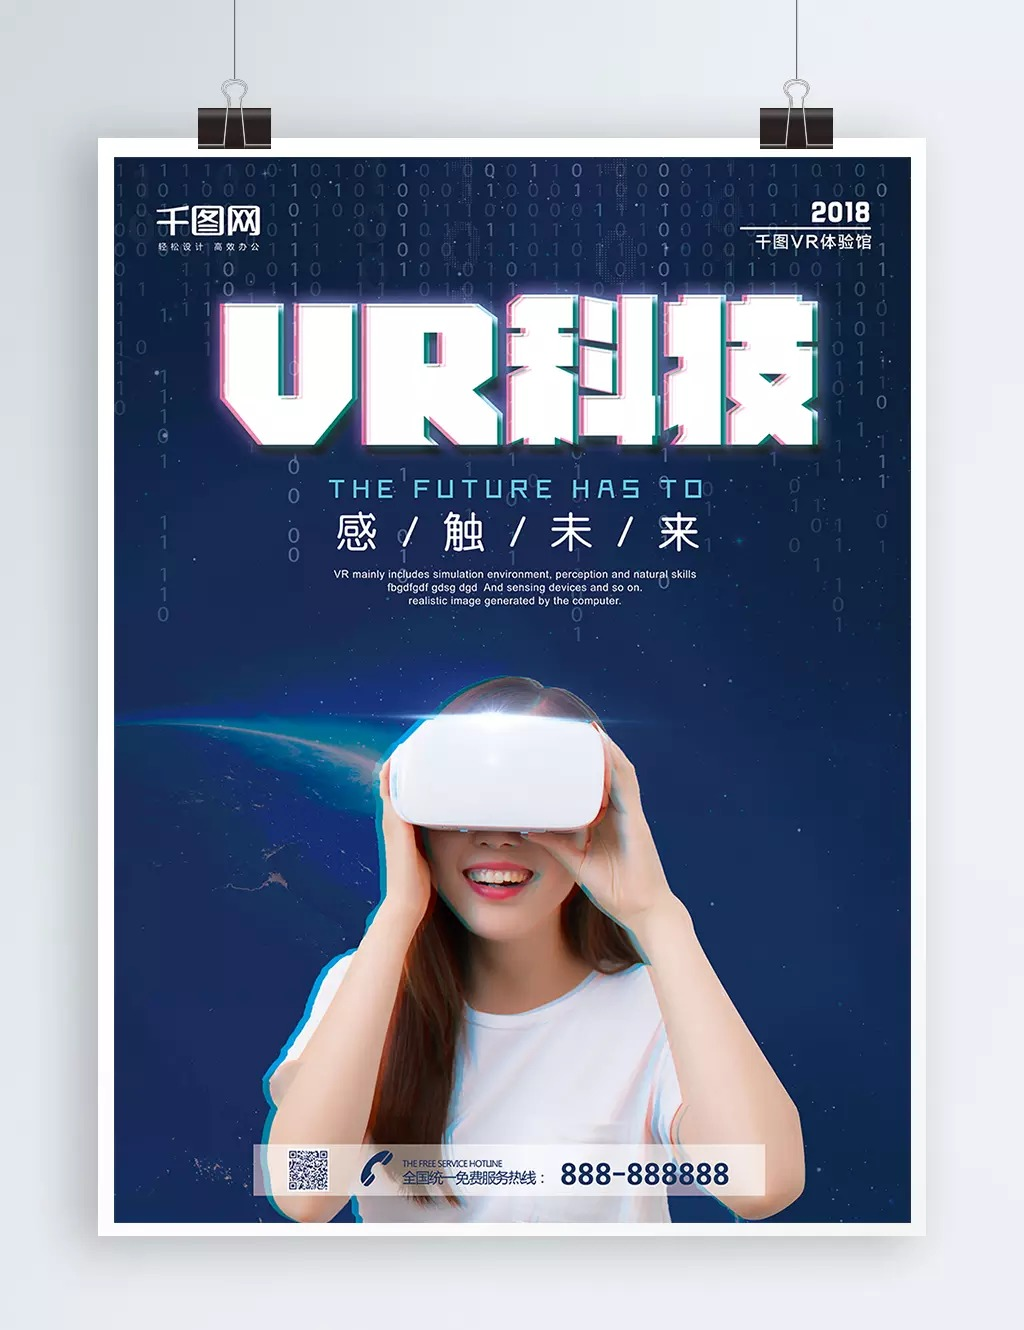 Vibrating Wind Vr Technology Artificial Intelligence